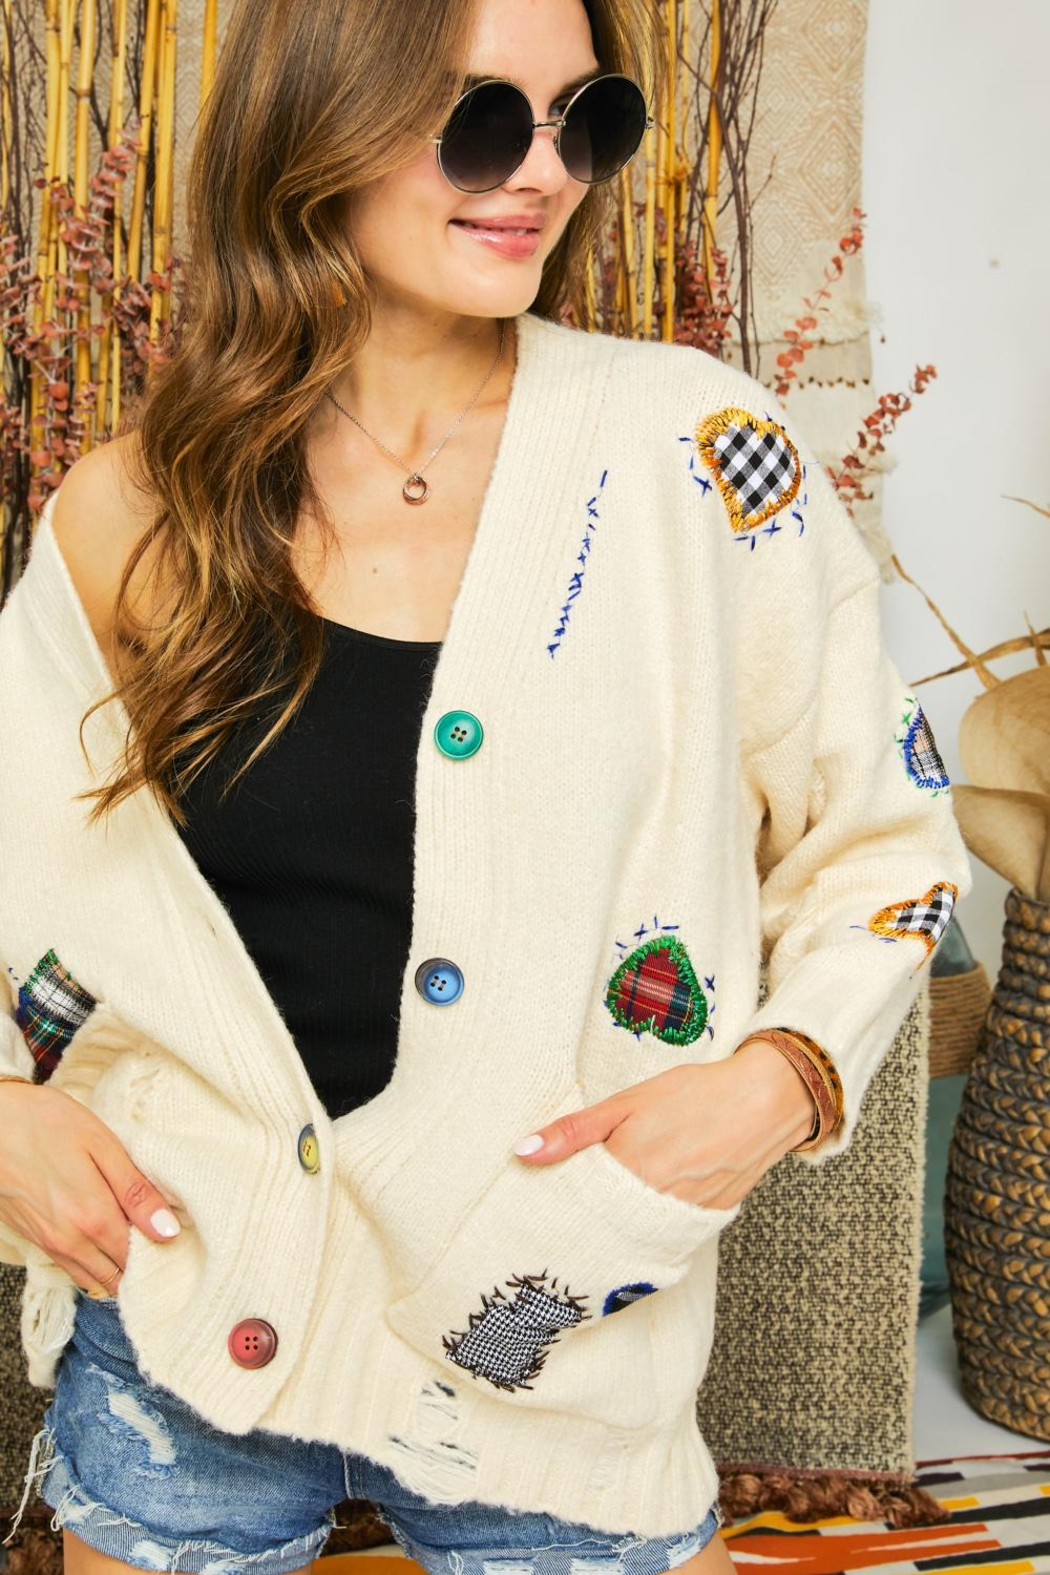 Adora Patchwork Embroidered Patch Multi Color Button Down Knit Sweater Cardigan - Front Cropped Image